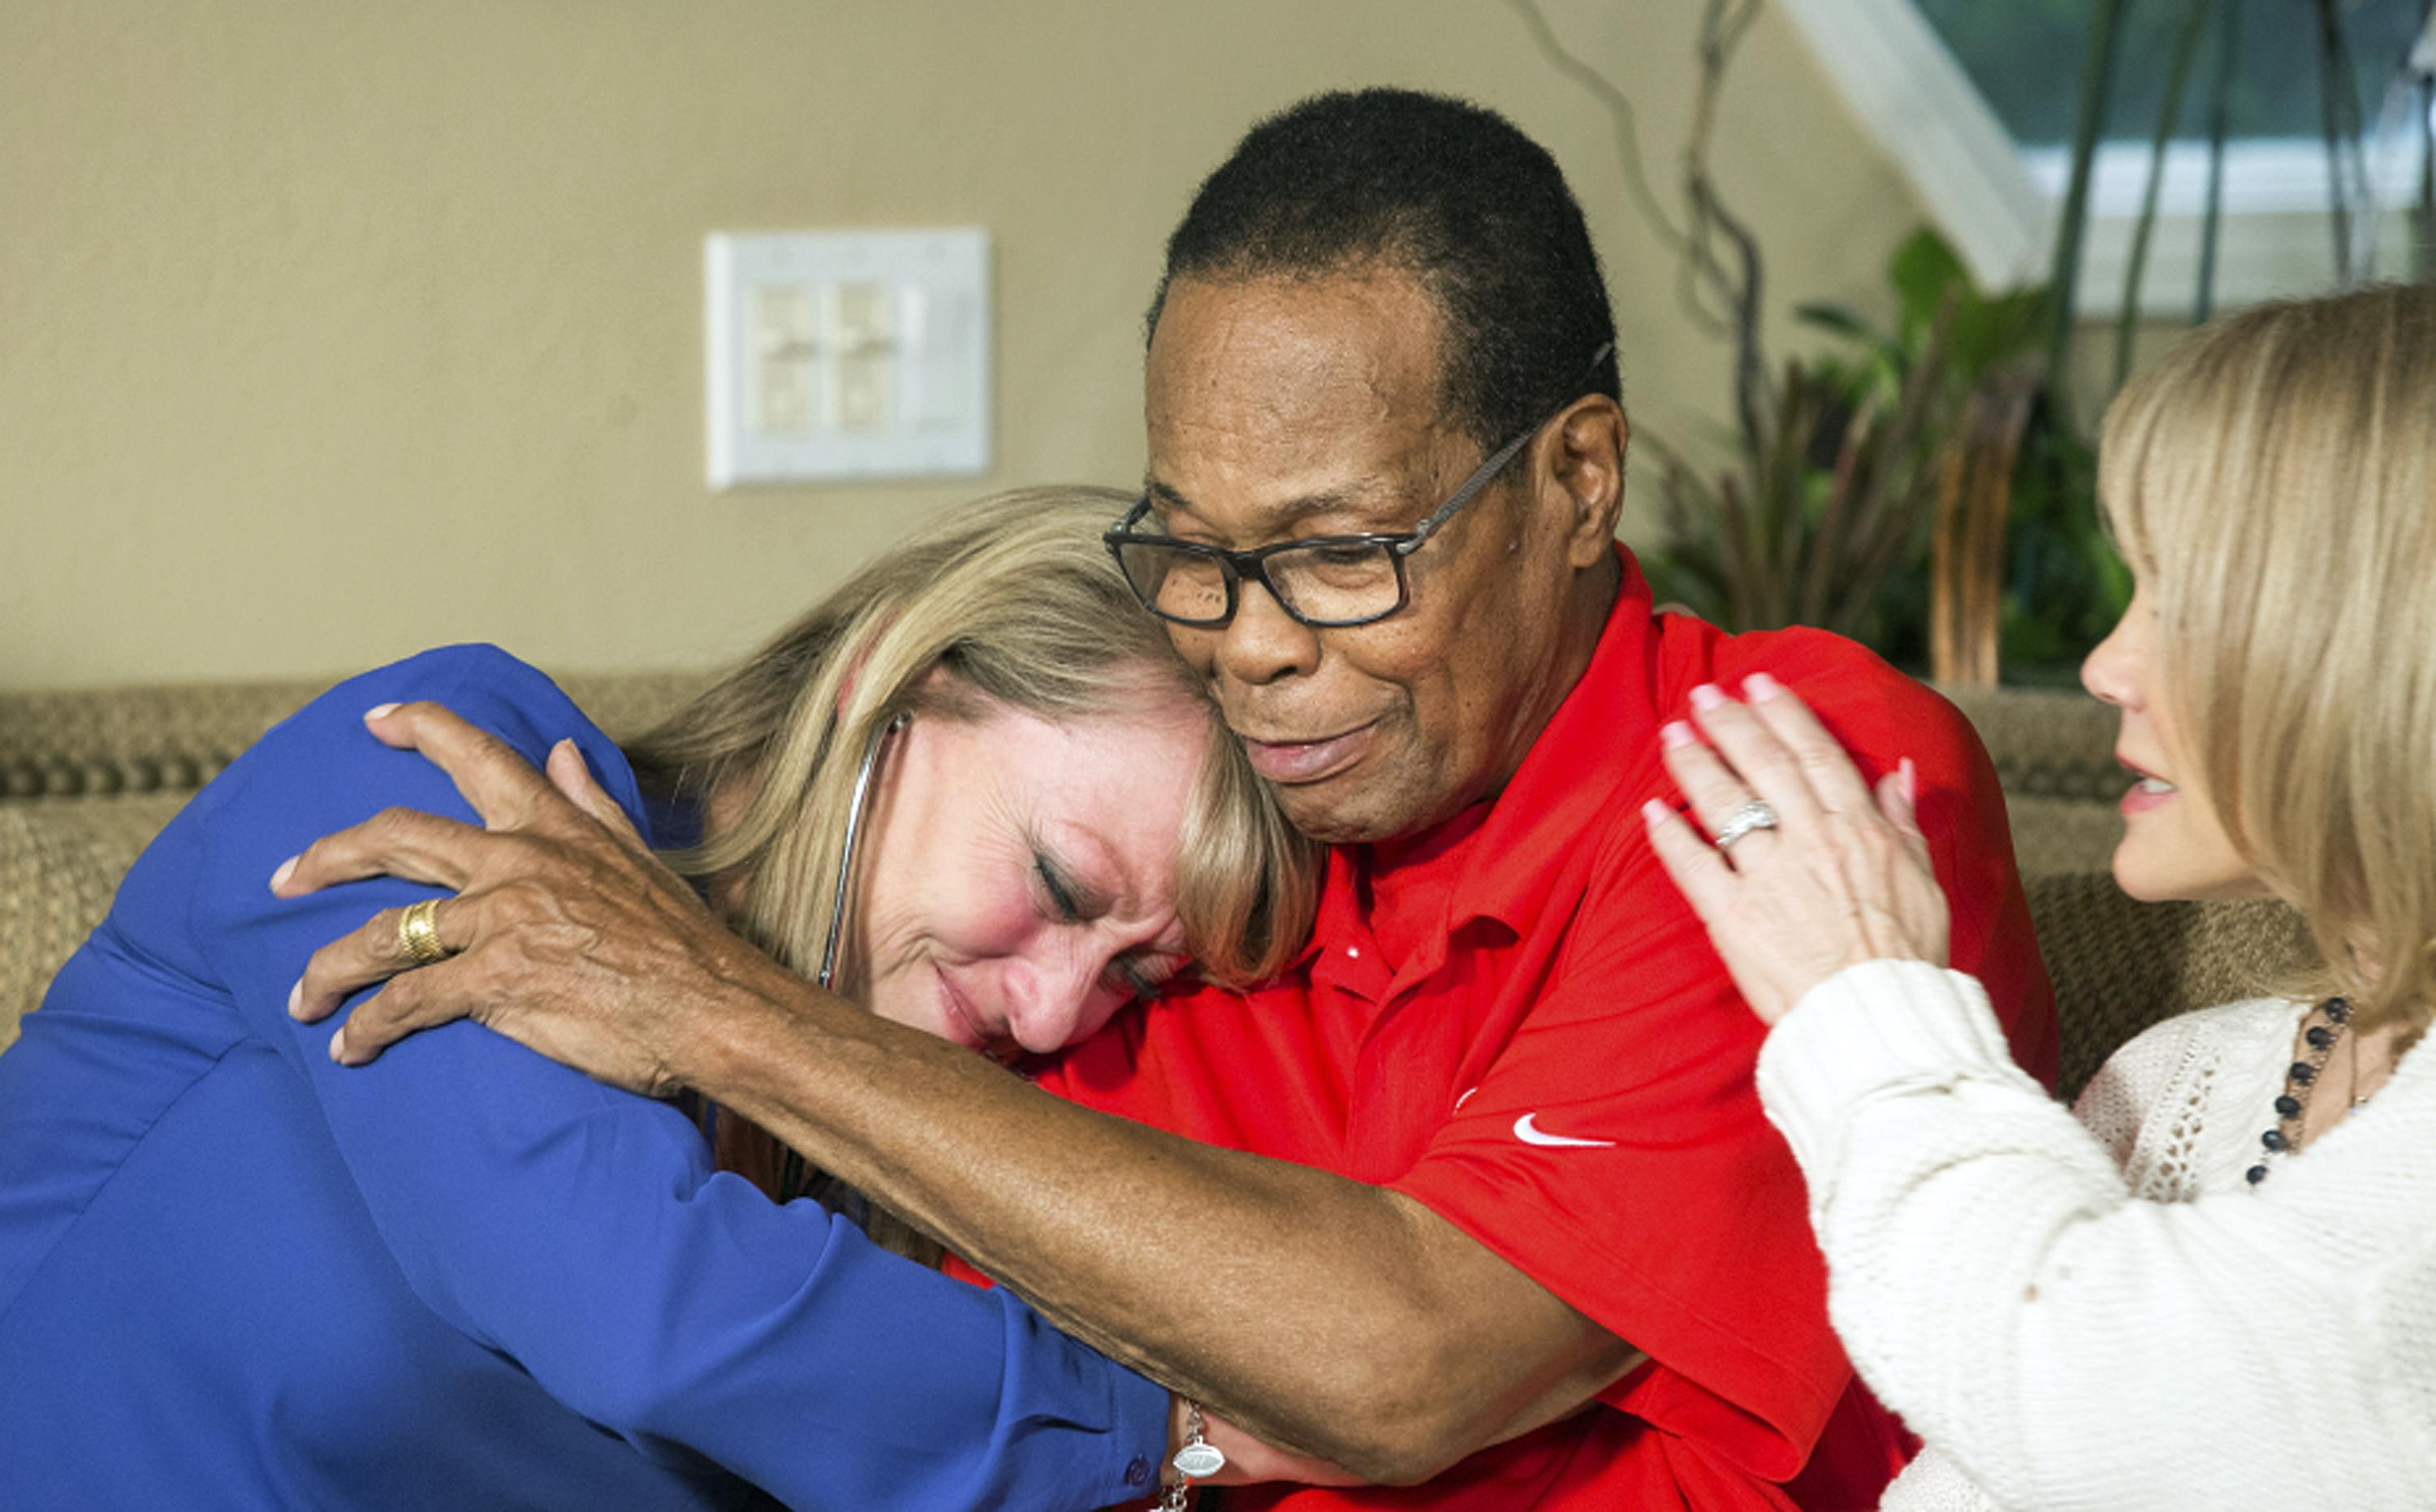 Rod Carew's new heart, kidney came from late NFL player | The